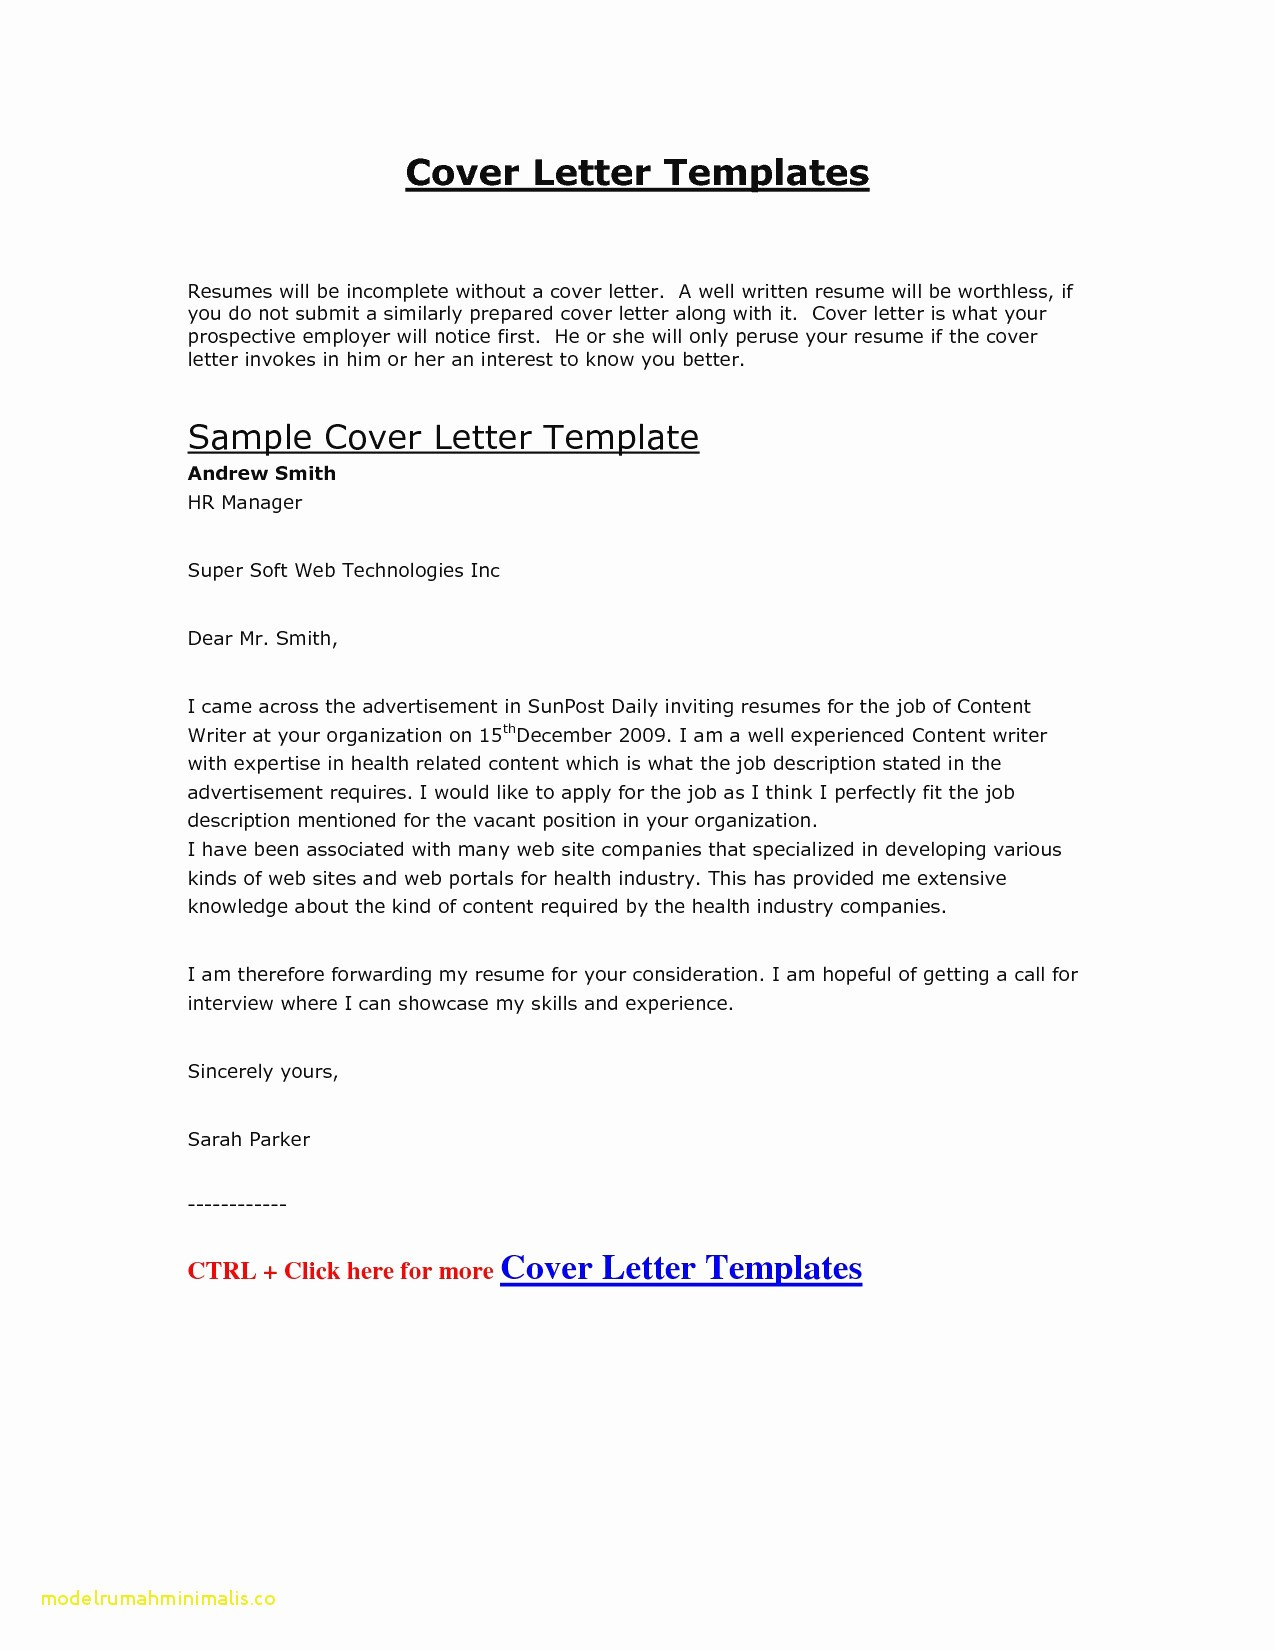 Google Docs Christmas Letter Template - Business Letter format Template Doc Copy Google Docs Business Letter